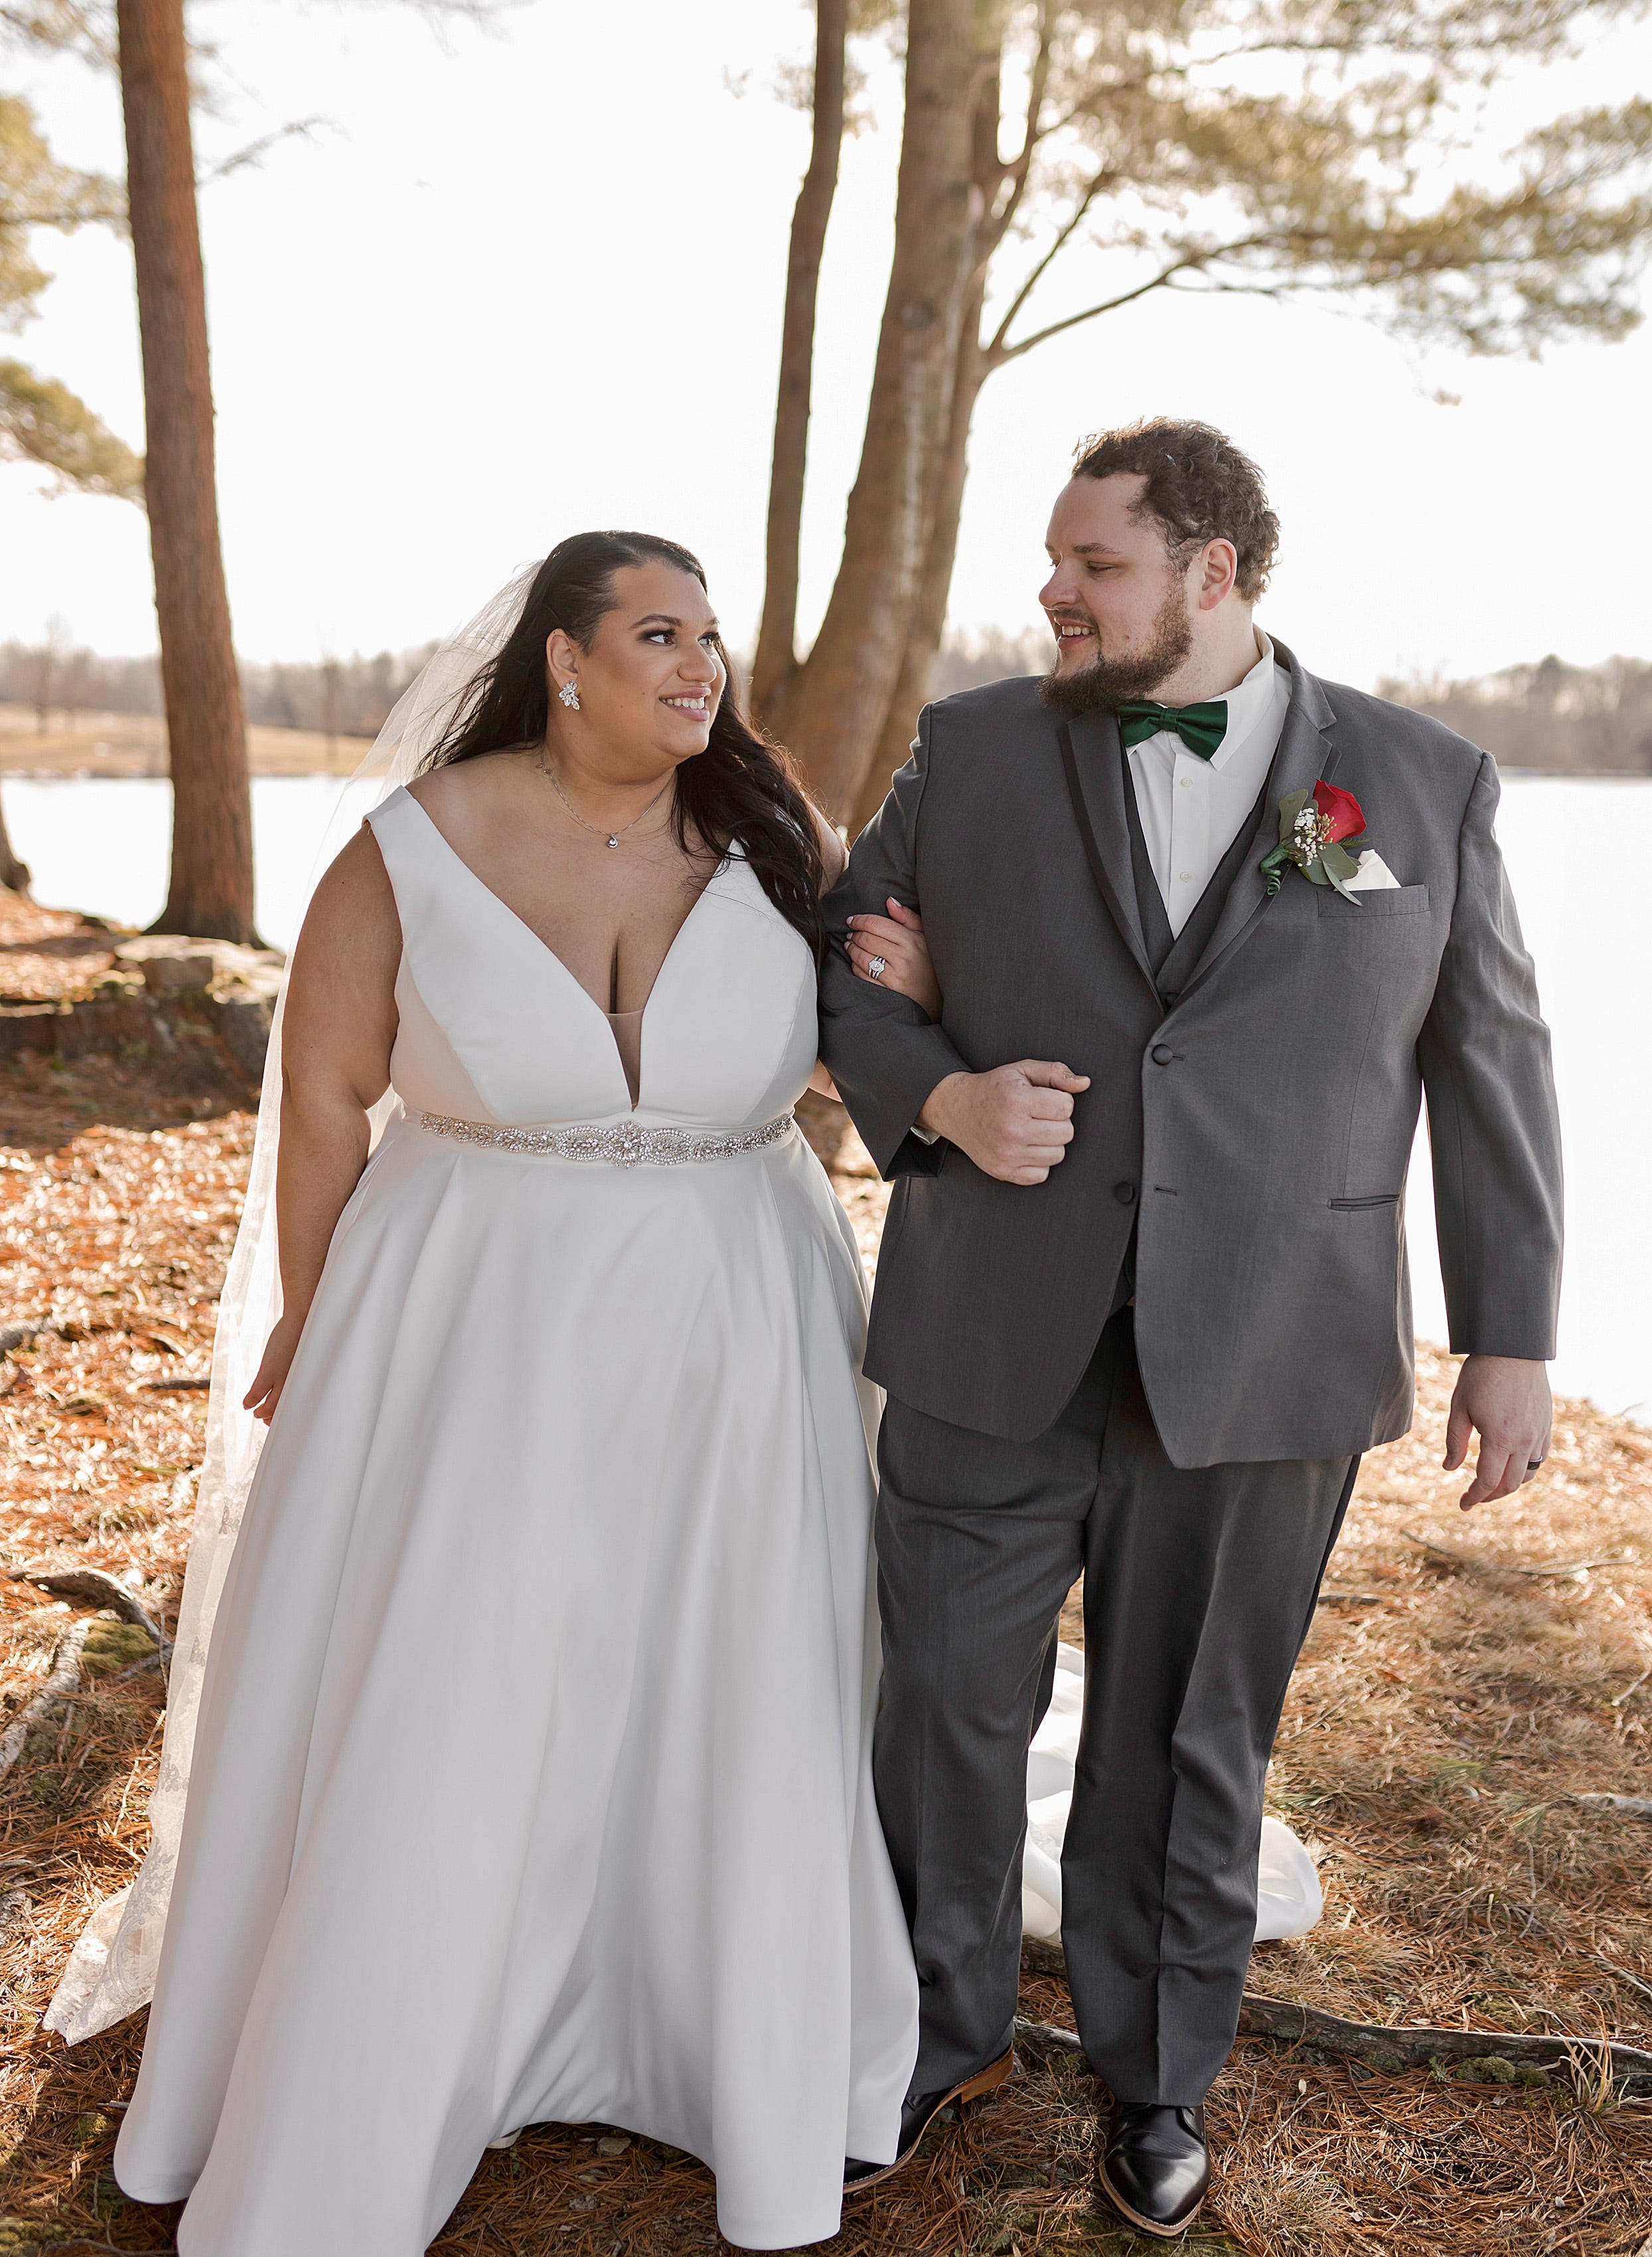 Theresa Raydo, at left, and Ethan Walker, at right, got married, Jan. 9, 2021, at Mitchell Lake near Cambridge Springs, Crawford County. Walker, 28, of Hookstown, Beaver County, and Raydo, 27, of Millcreek Township, Erie County, were both adopted by different western Pennsylvania families from Russia.